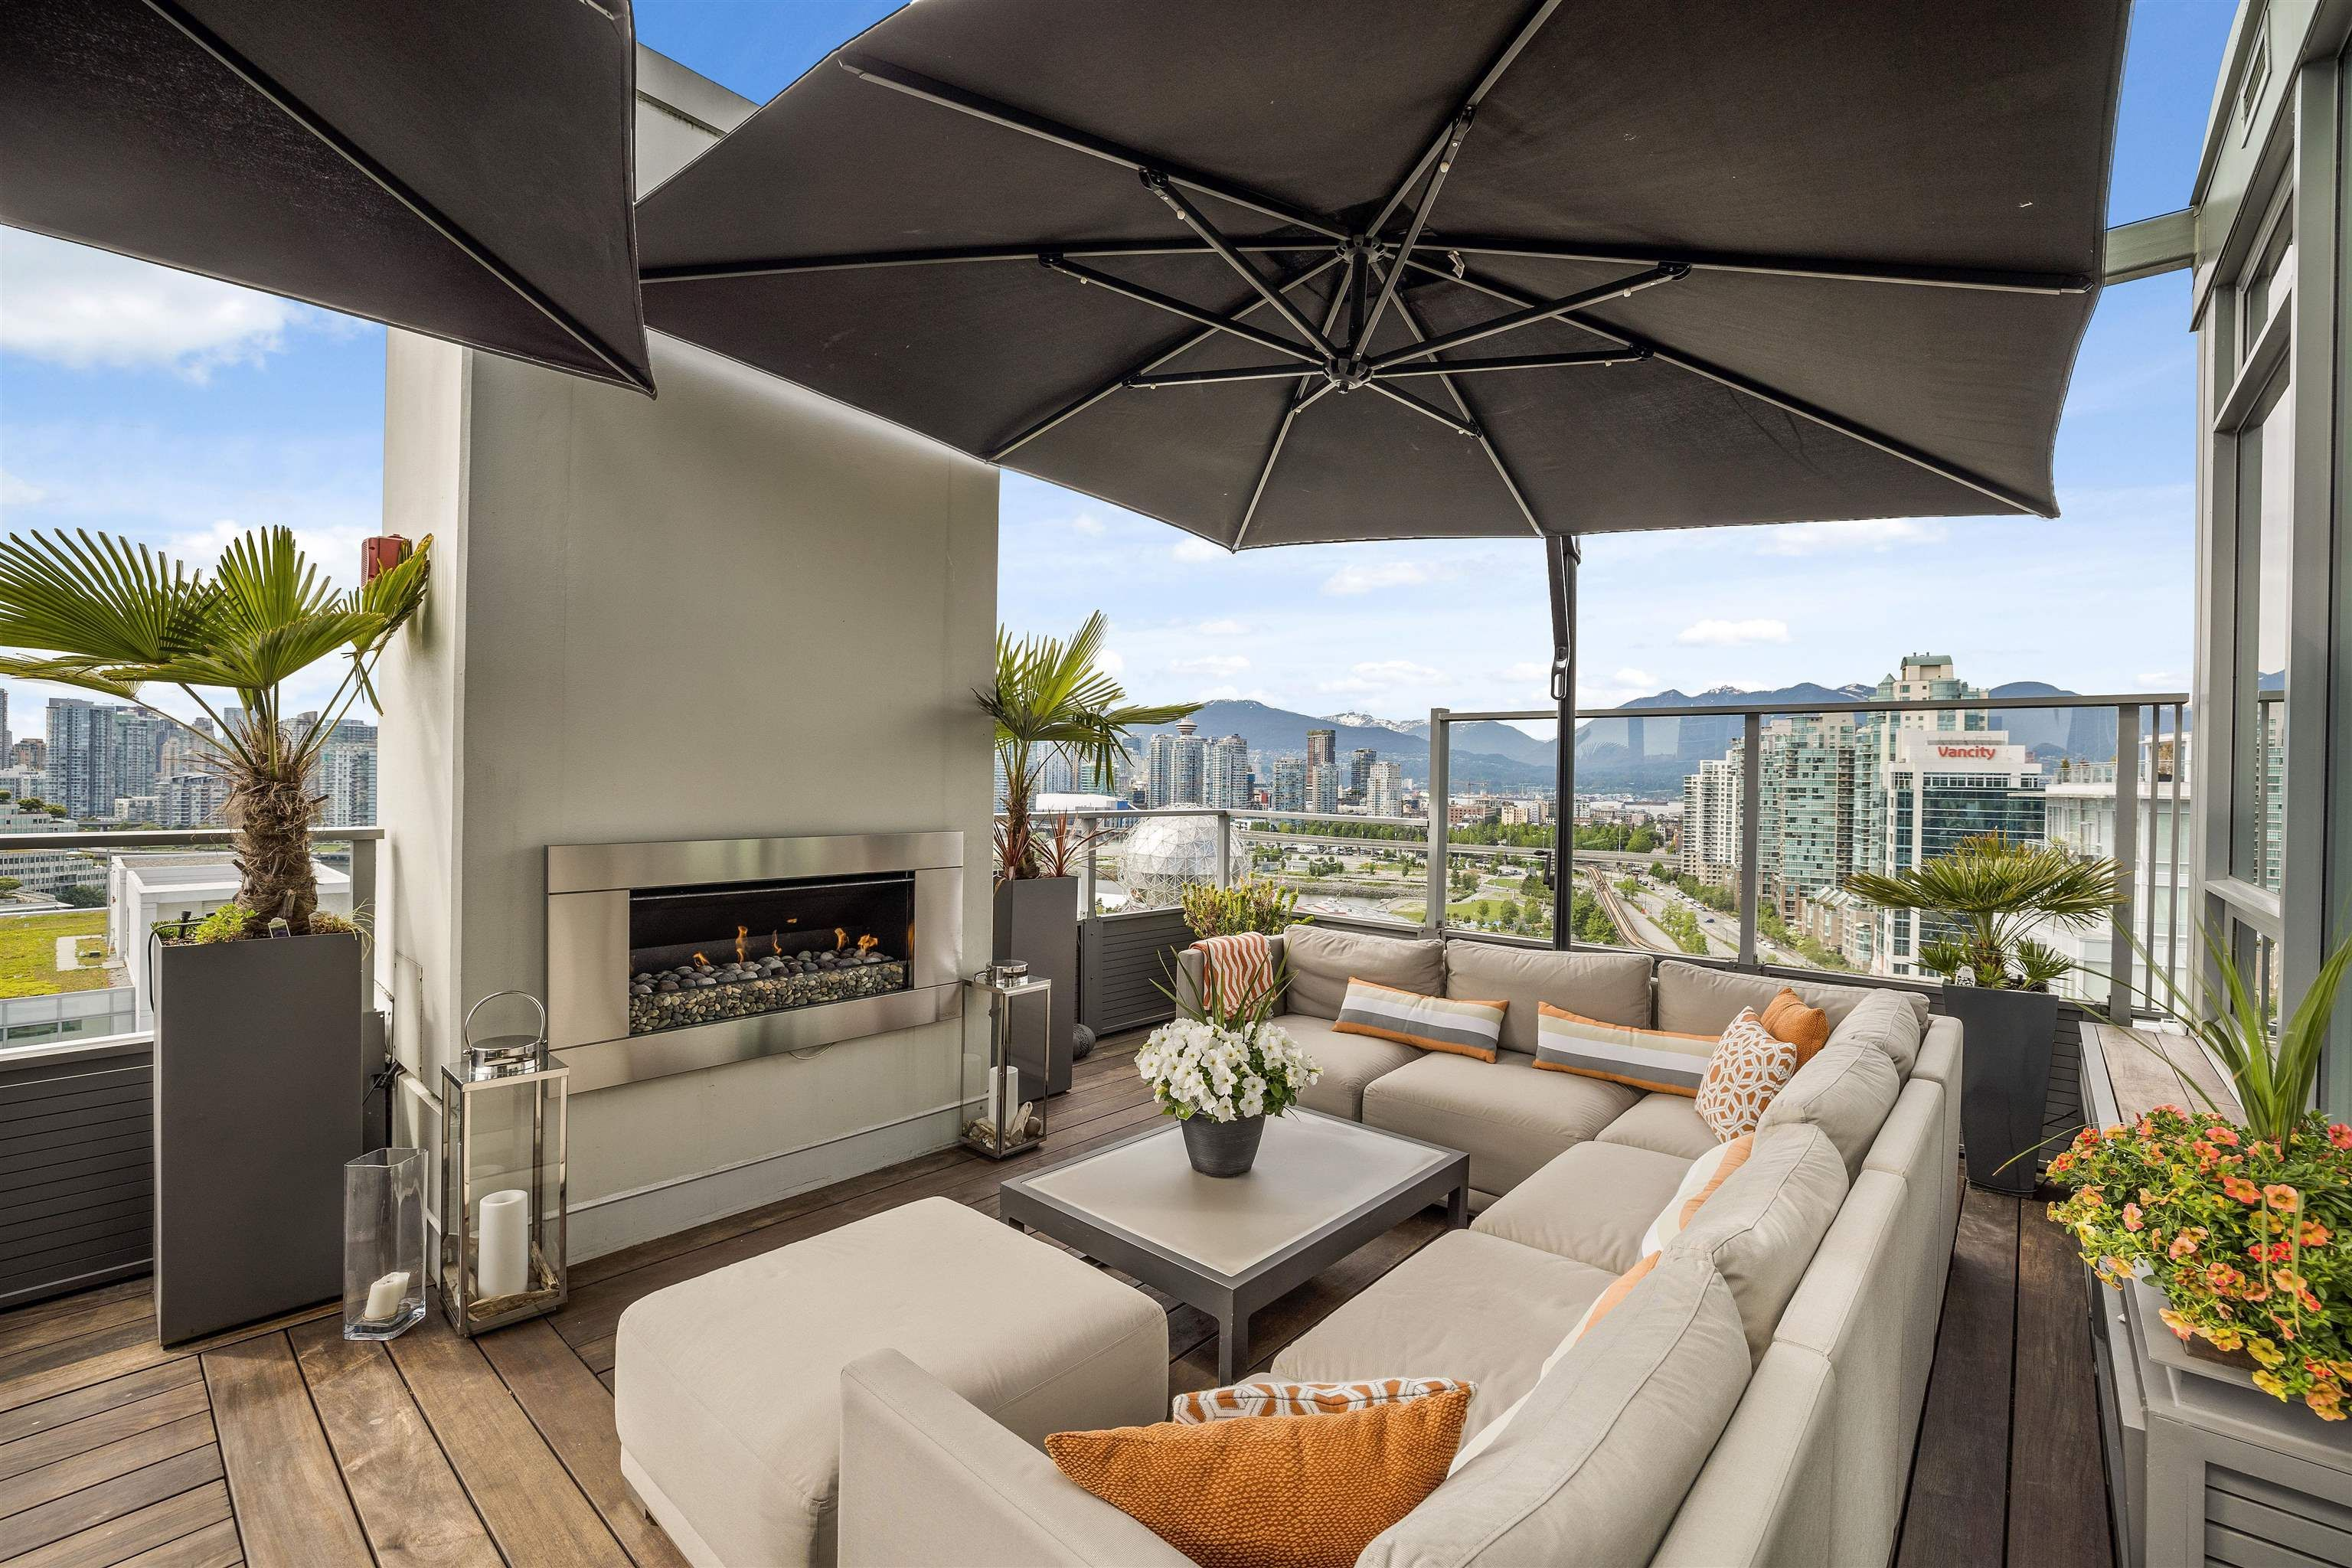 """Main Photo: PH 2101 110 SWITCHMEN Street in Vancouver: Mount Pleasant VE Condo for sale in """"THE LIDO"""" (Vancouver East)  : MLS®# R2614884"""